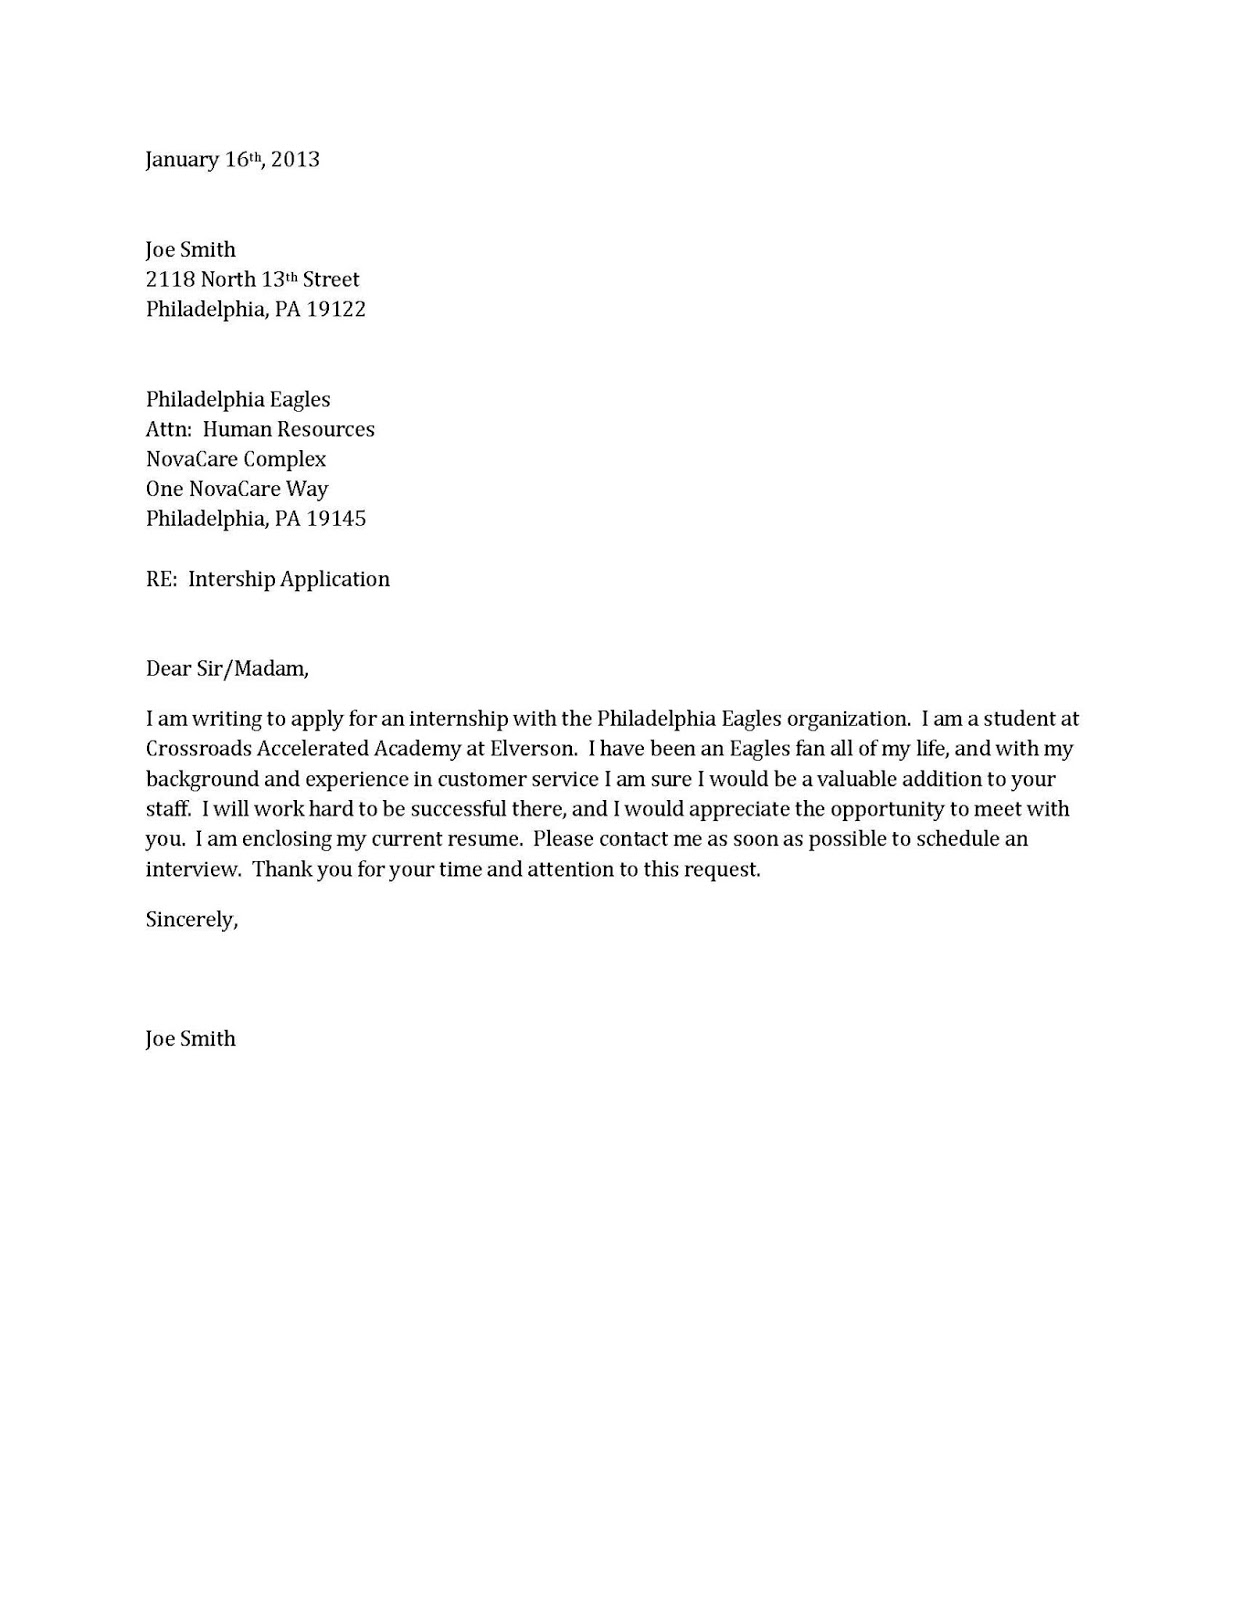 Harvard Business School Essay Topic Analysis 2014 2015 Clear